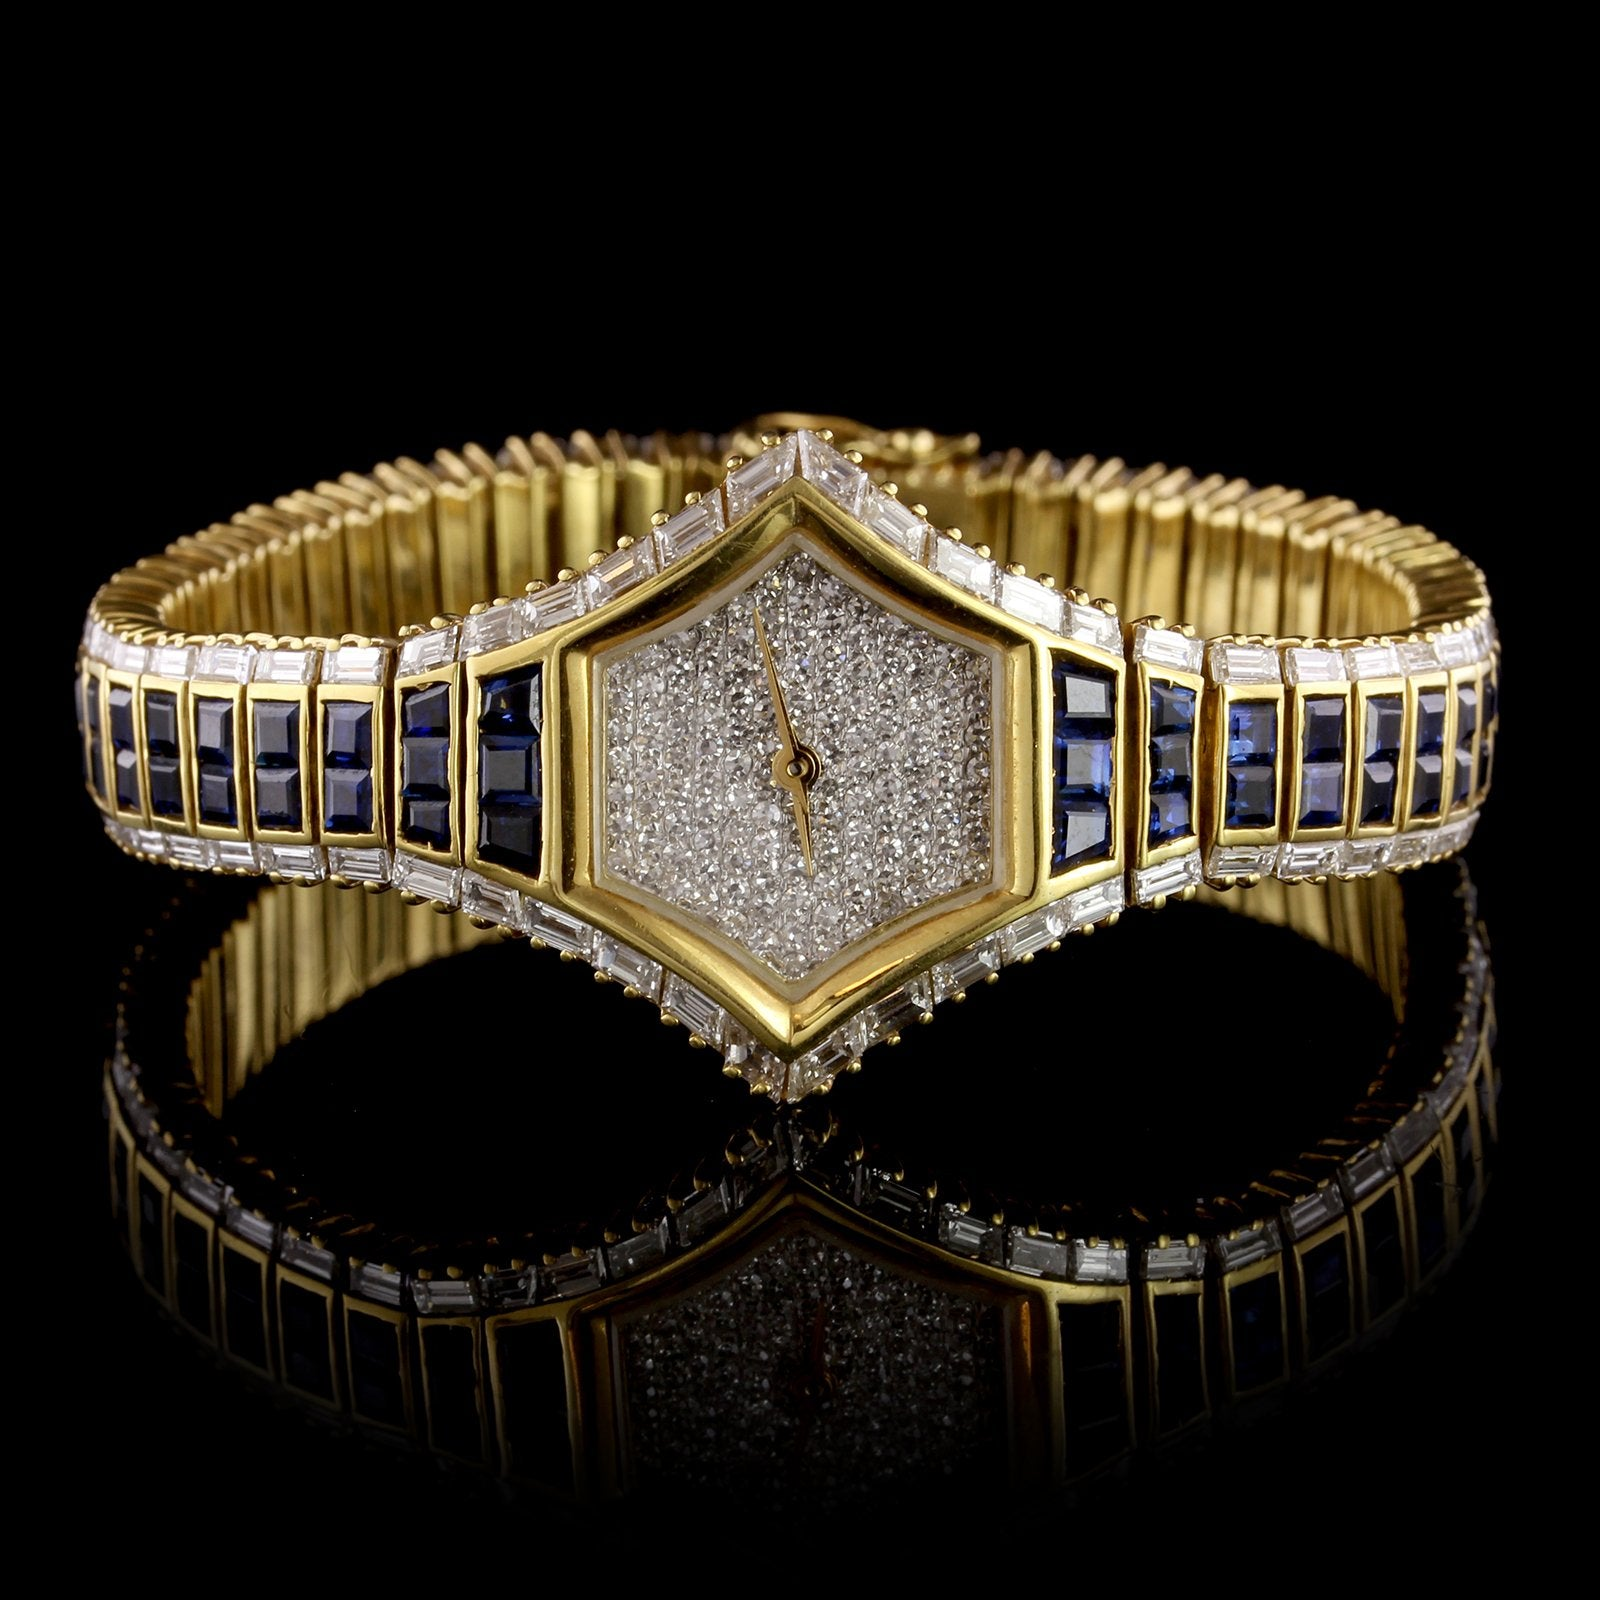 18K Yellow Gold Estate Sapphire and Diamond Wristwatch